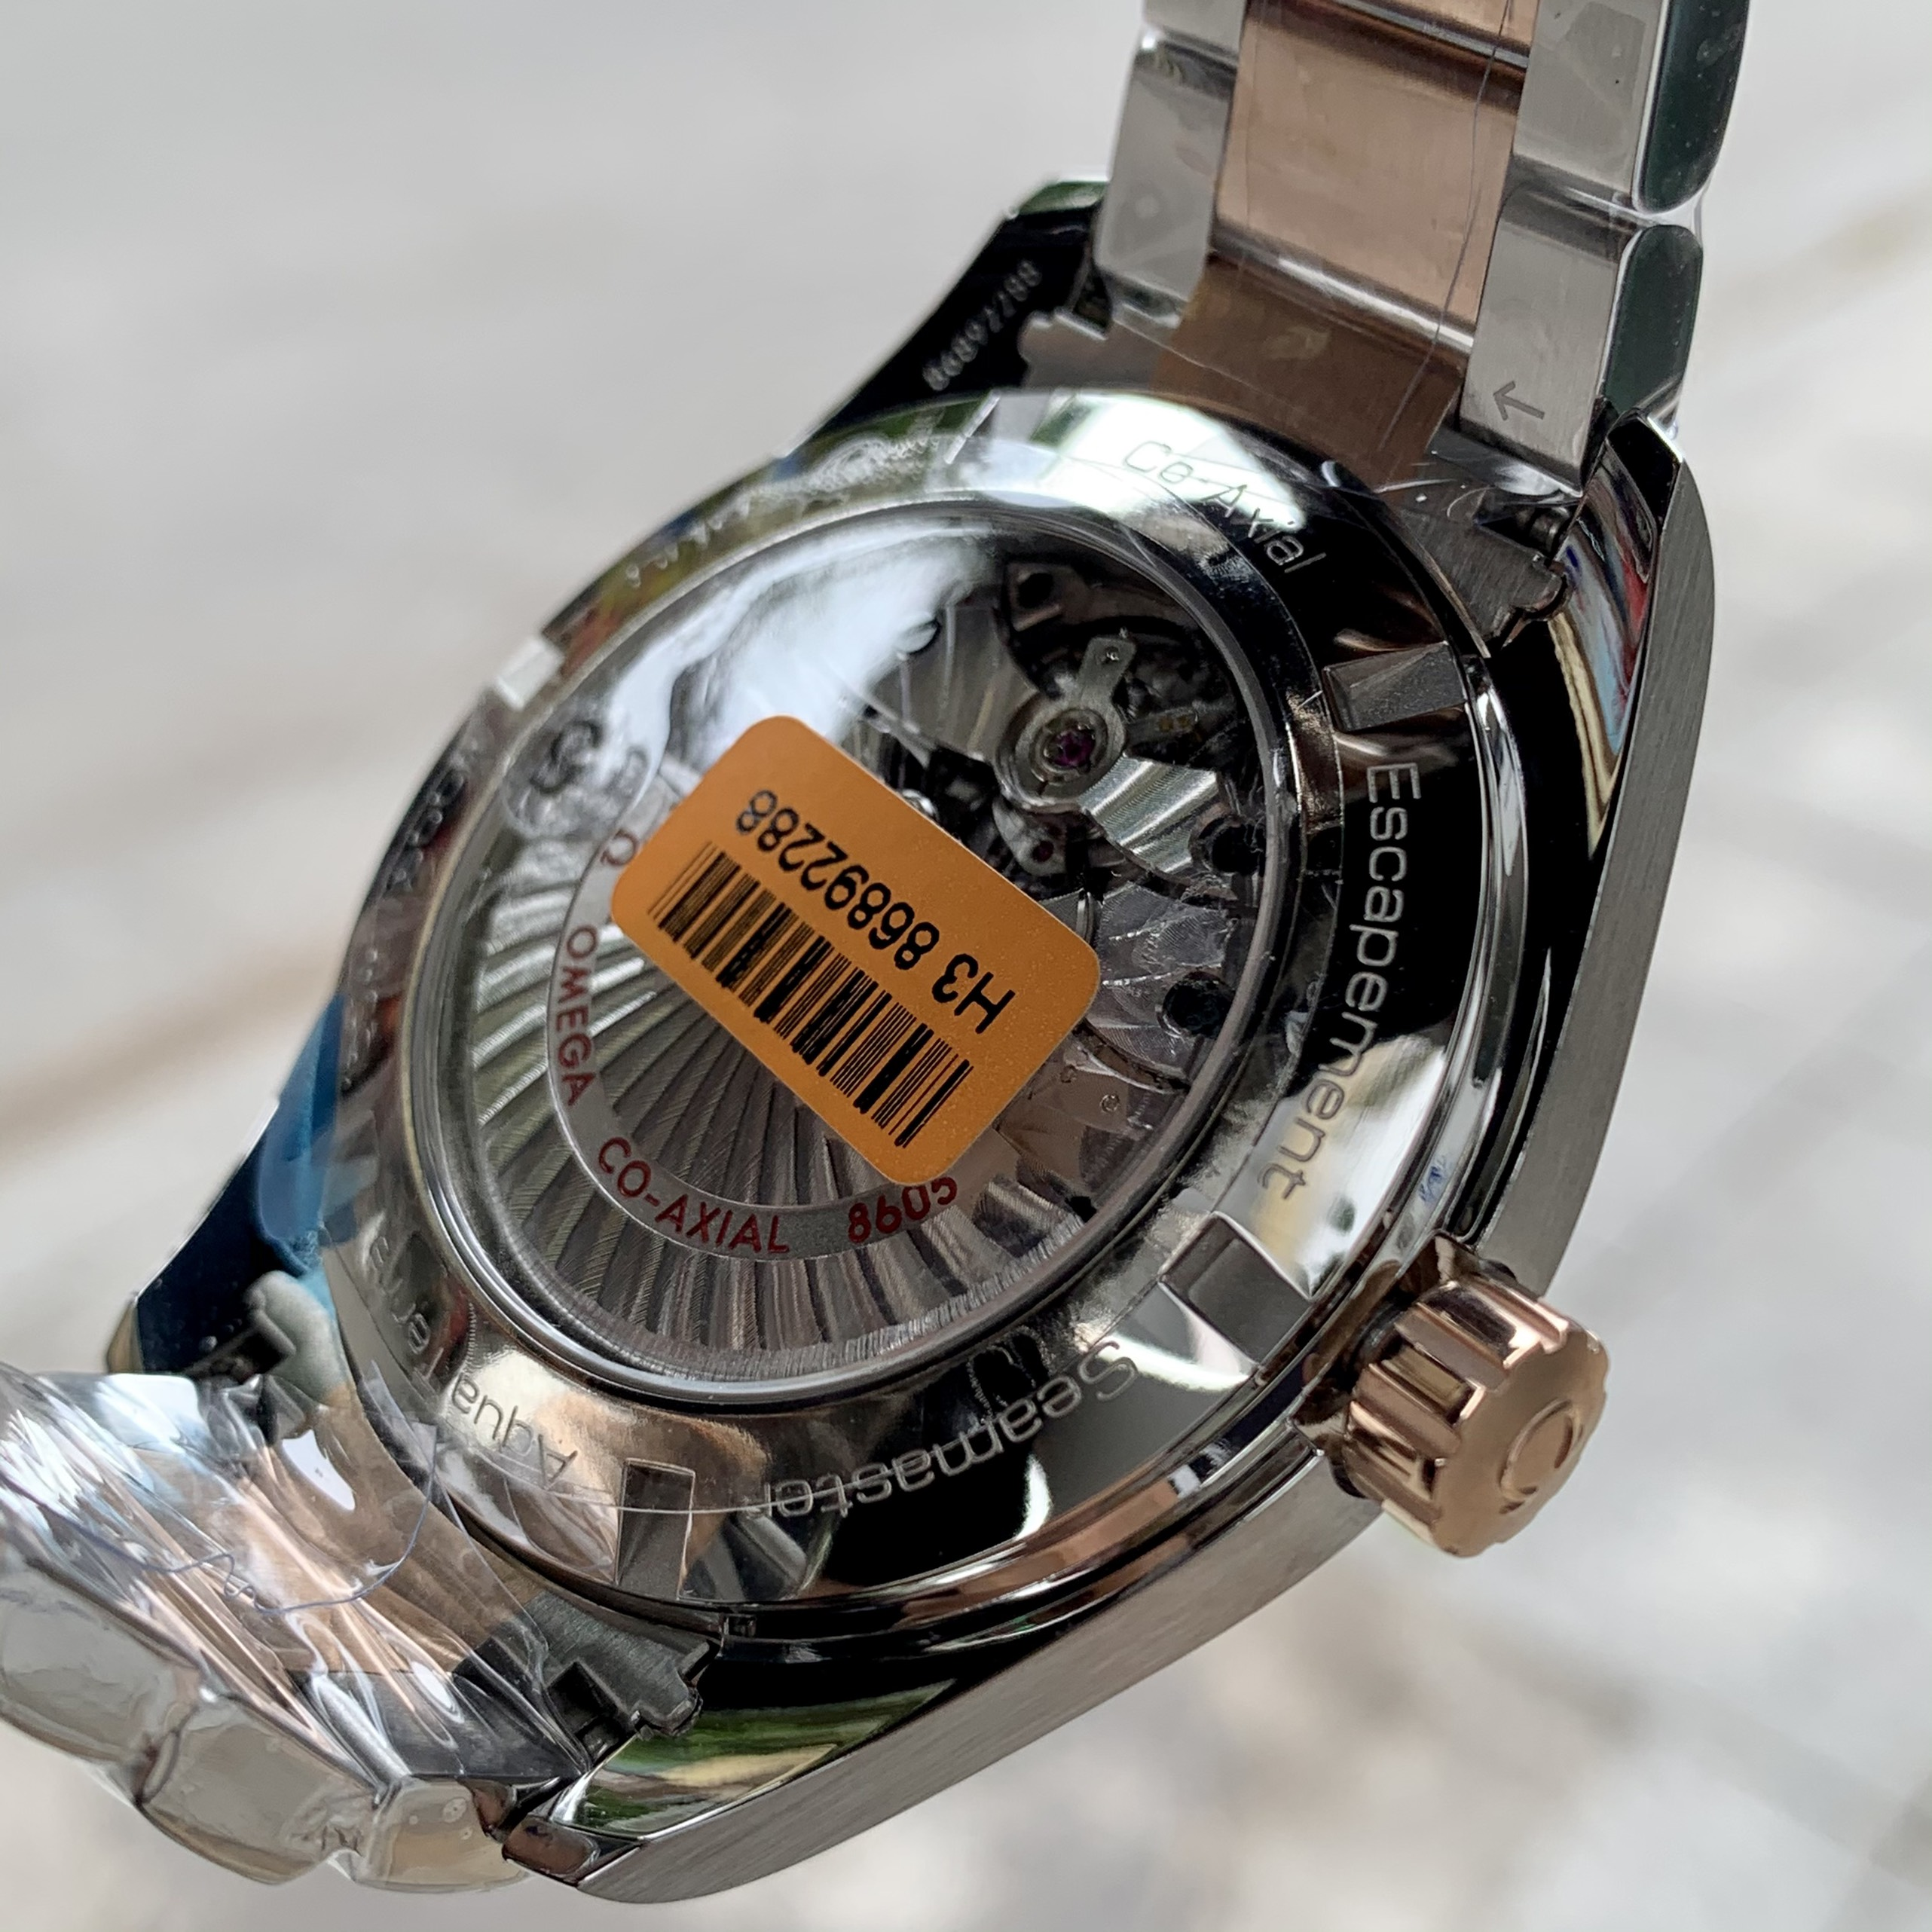 jaquet-droz-chuan-11-may-thuy-sy-5-2